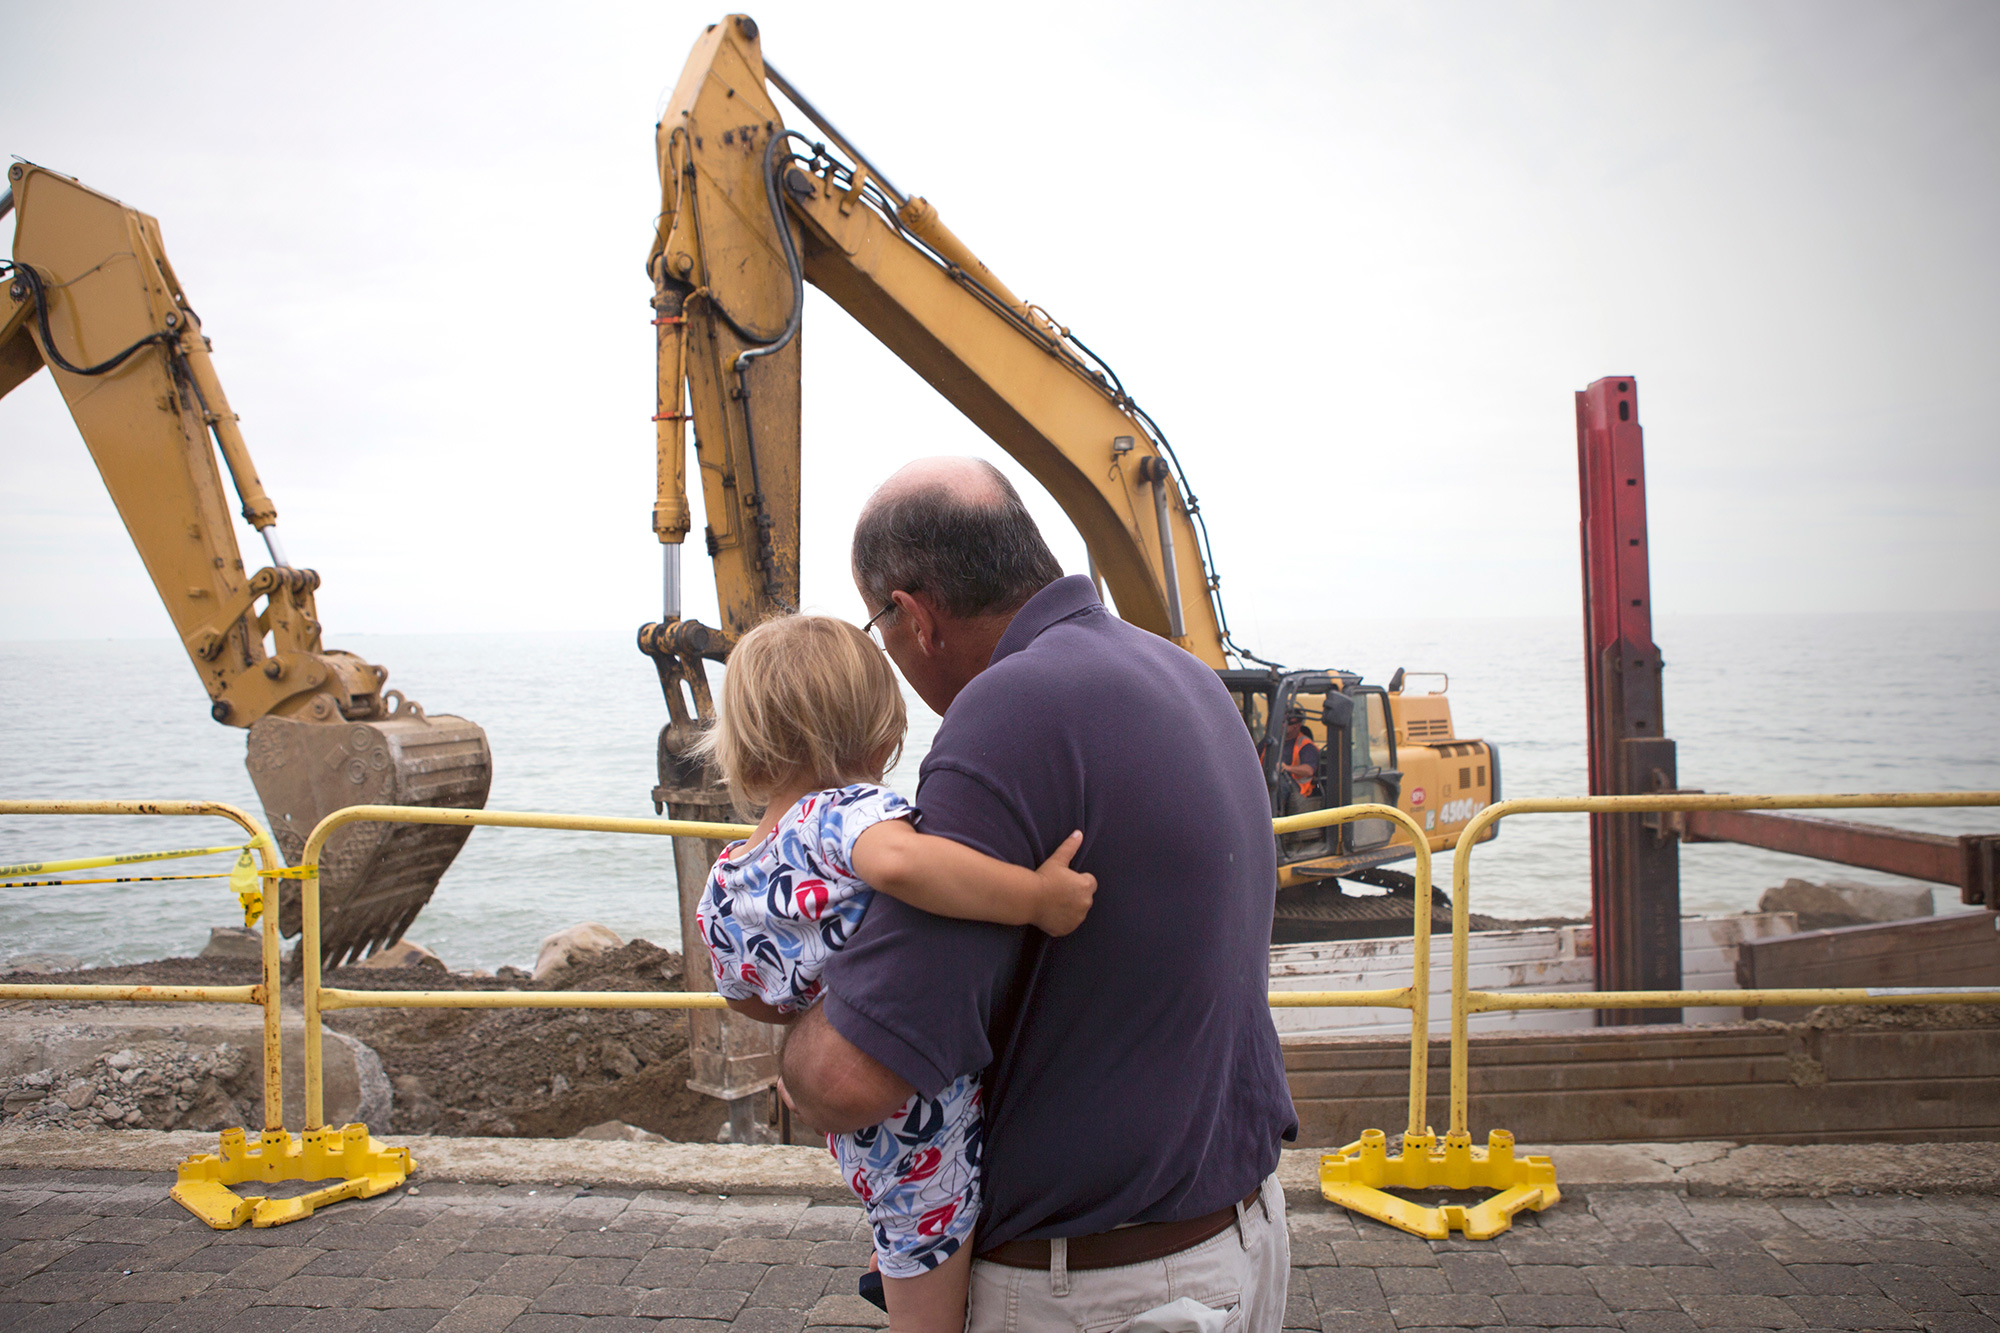 """Scituate resident Peter Caruso observes the construction of a new seawall in Scituate with his grandson, Santo Arias. The town hopes that bolstering the seawall will mitigate the severity of winter storms and the effects of sea level rise. """"It is a tough spot to try and live and the storms are more frequent than they use to be,"""" says Caruso. (Photo by Lauren Owens Lambert/GroundTruth)"""